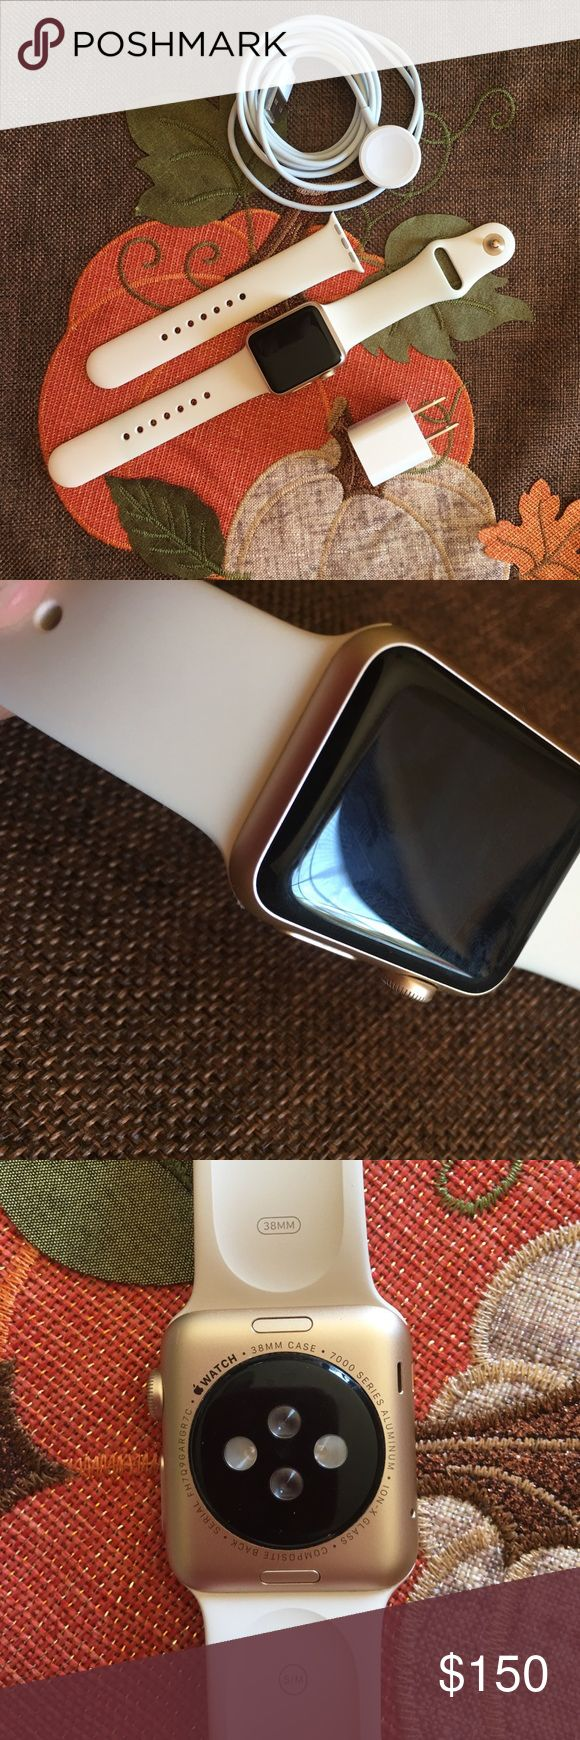 Apple Watch Series 1 EUC Apple Watch series 1 EUC reset to factory settings and unlocked there is a minor scuff pictured in the second pic but it's not very noticeable price reflects it's Gold with antique white band 38mm I don't have the original box  only worn a hand full of times I thought I would use it more my loss your gain! 😉 Apple Accessories Watches